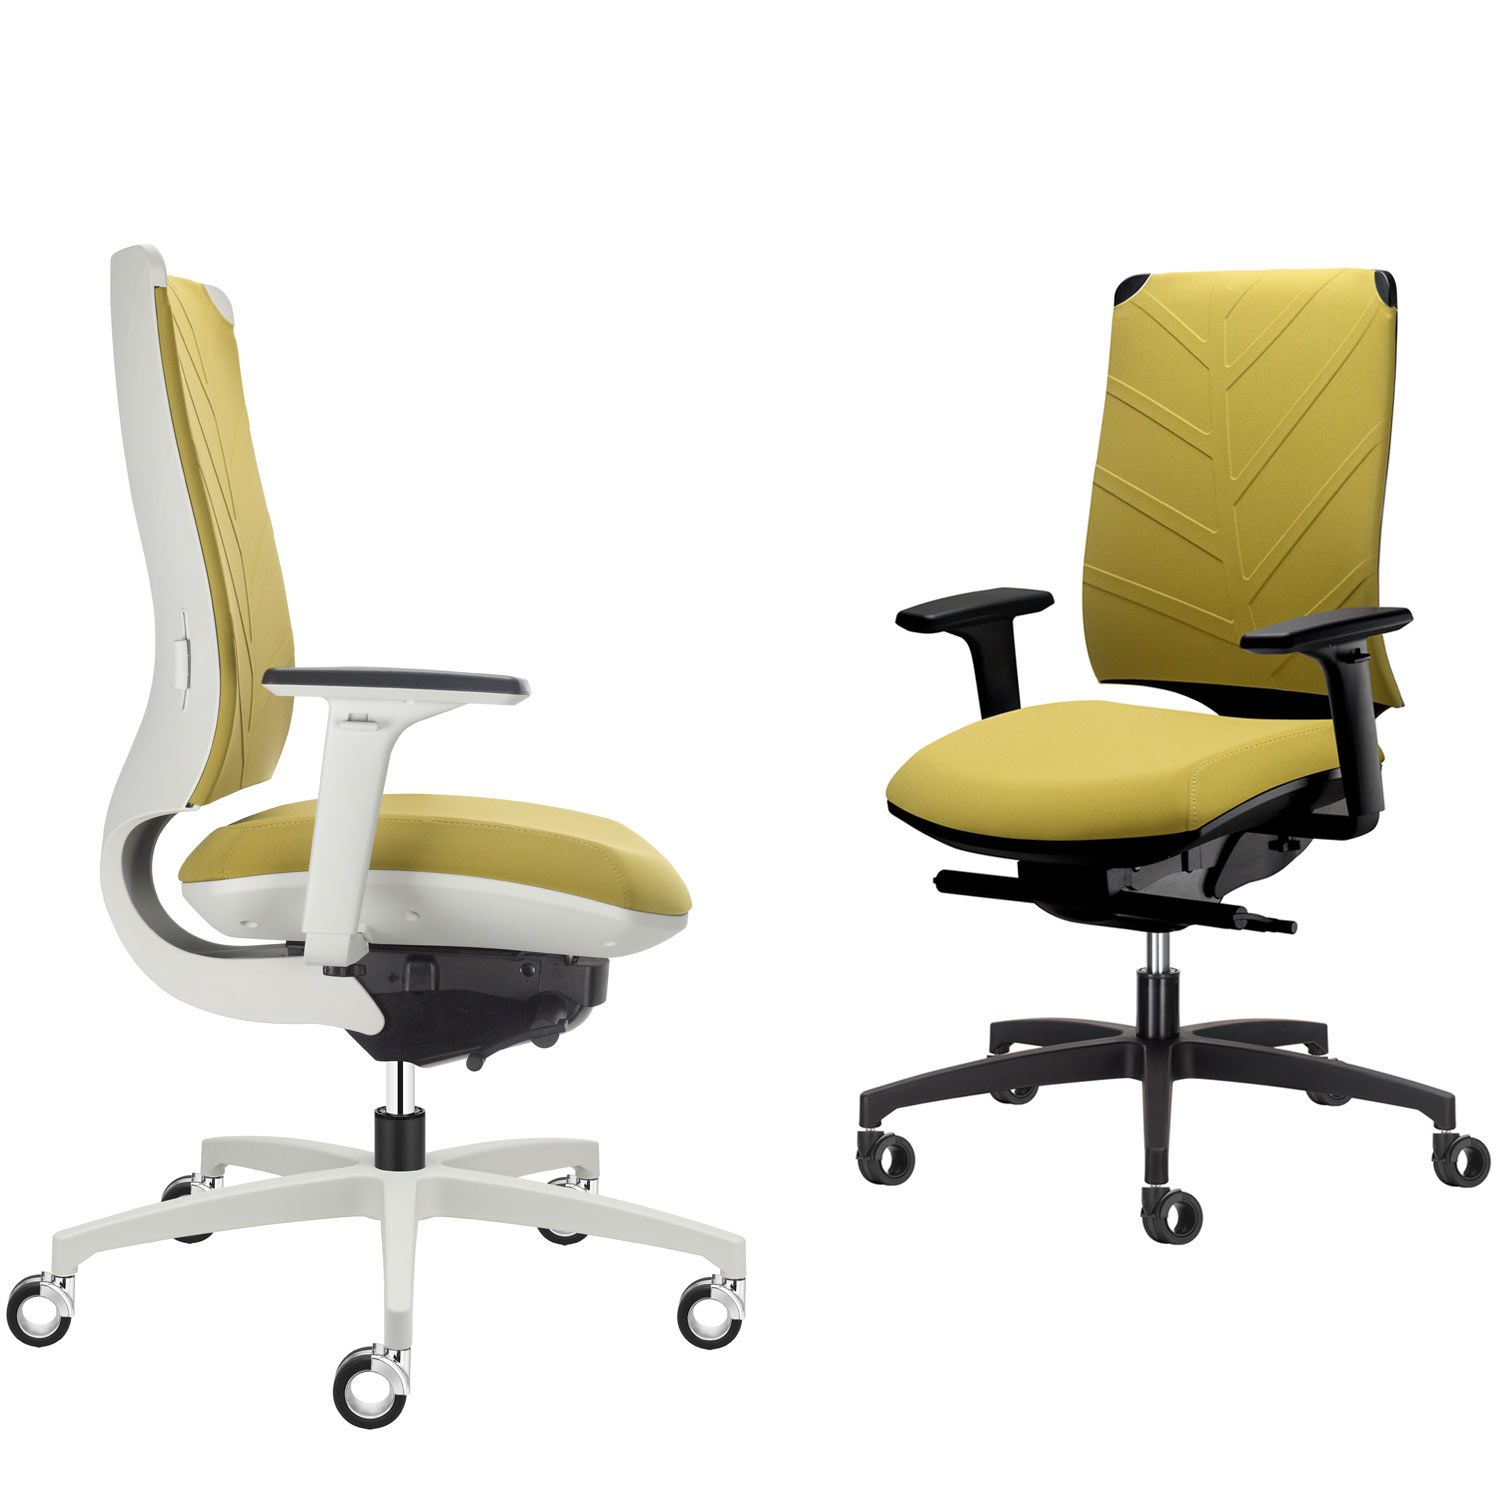 Fully Adjustable Office Chair leaf task chair is a fully adjustable ergonomic office chair